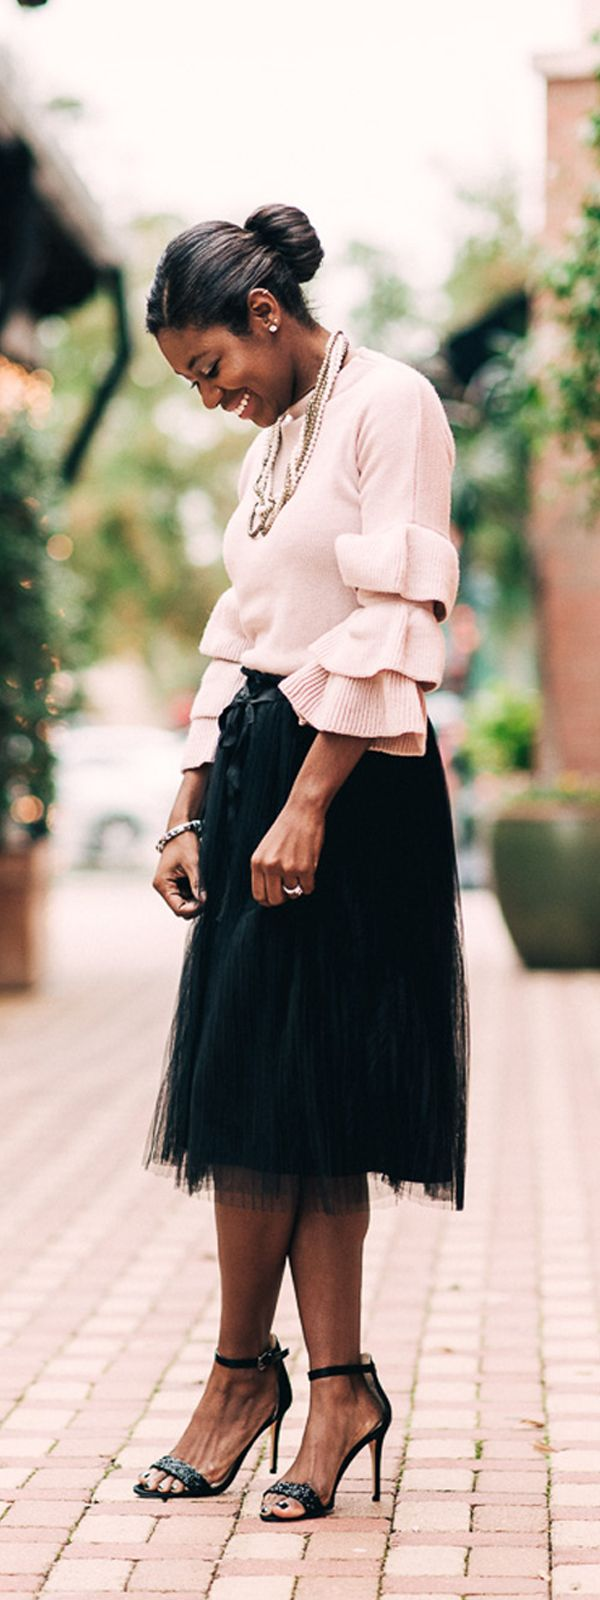 Image result for black girl in pink tulle skirt and yellow cardigan